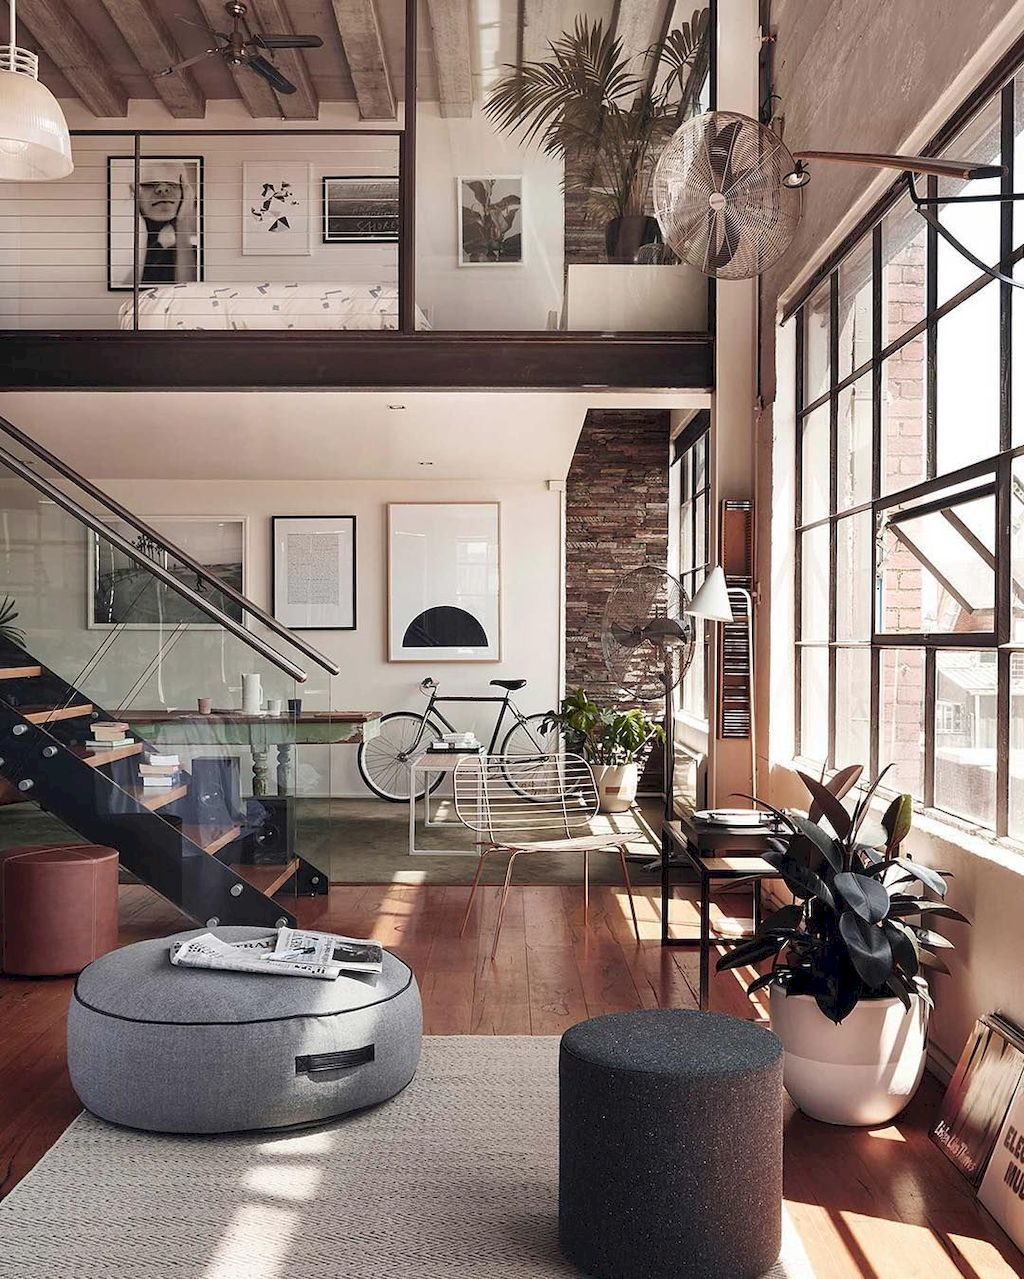 Adorable apartment design ideas to your space for a more dynamic room https